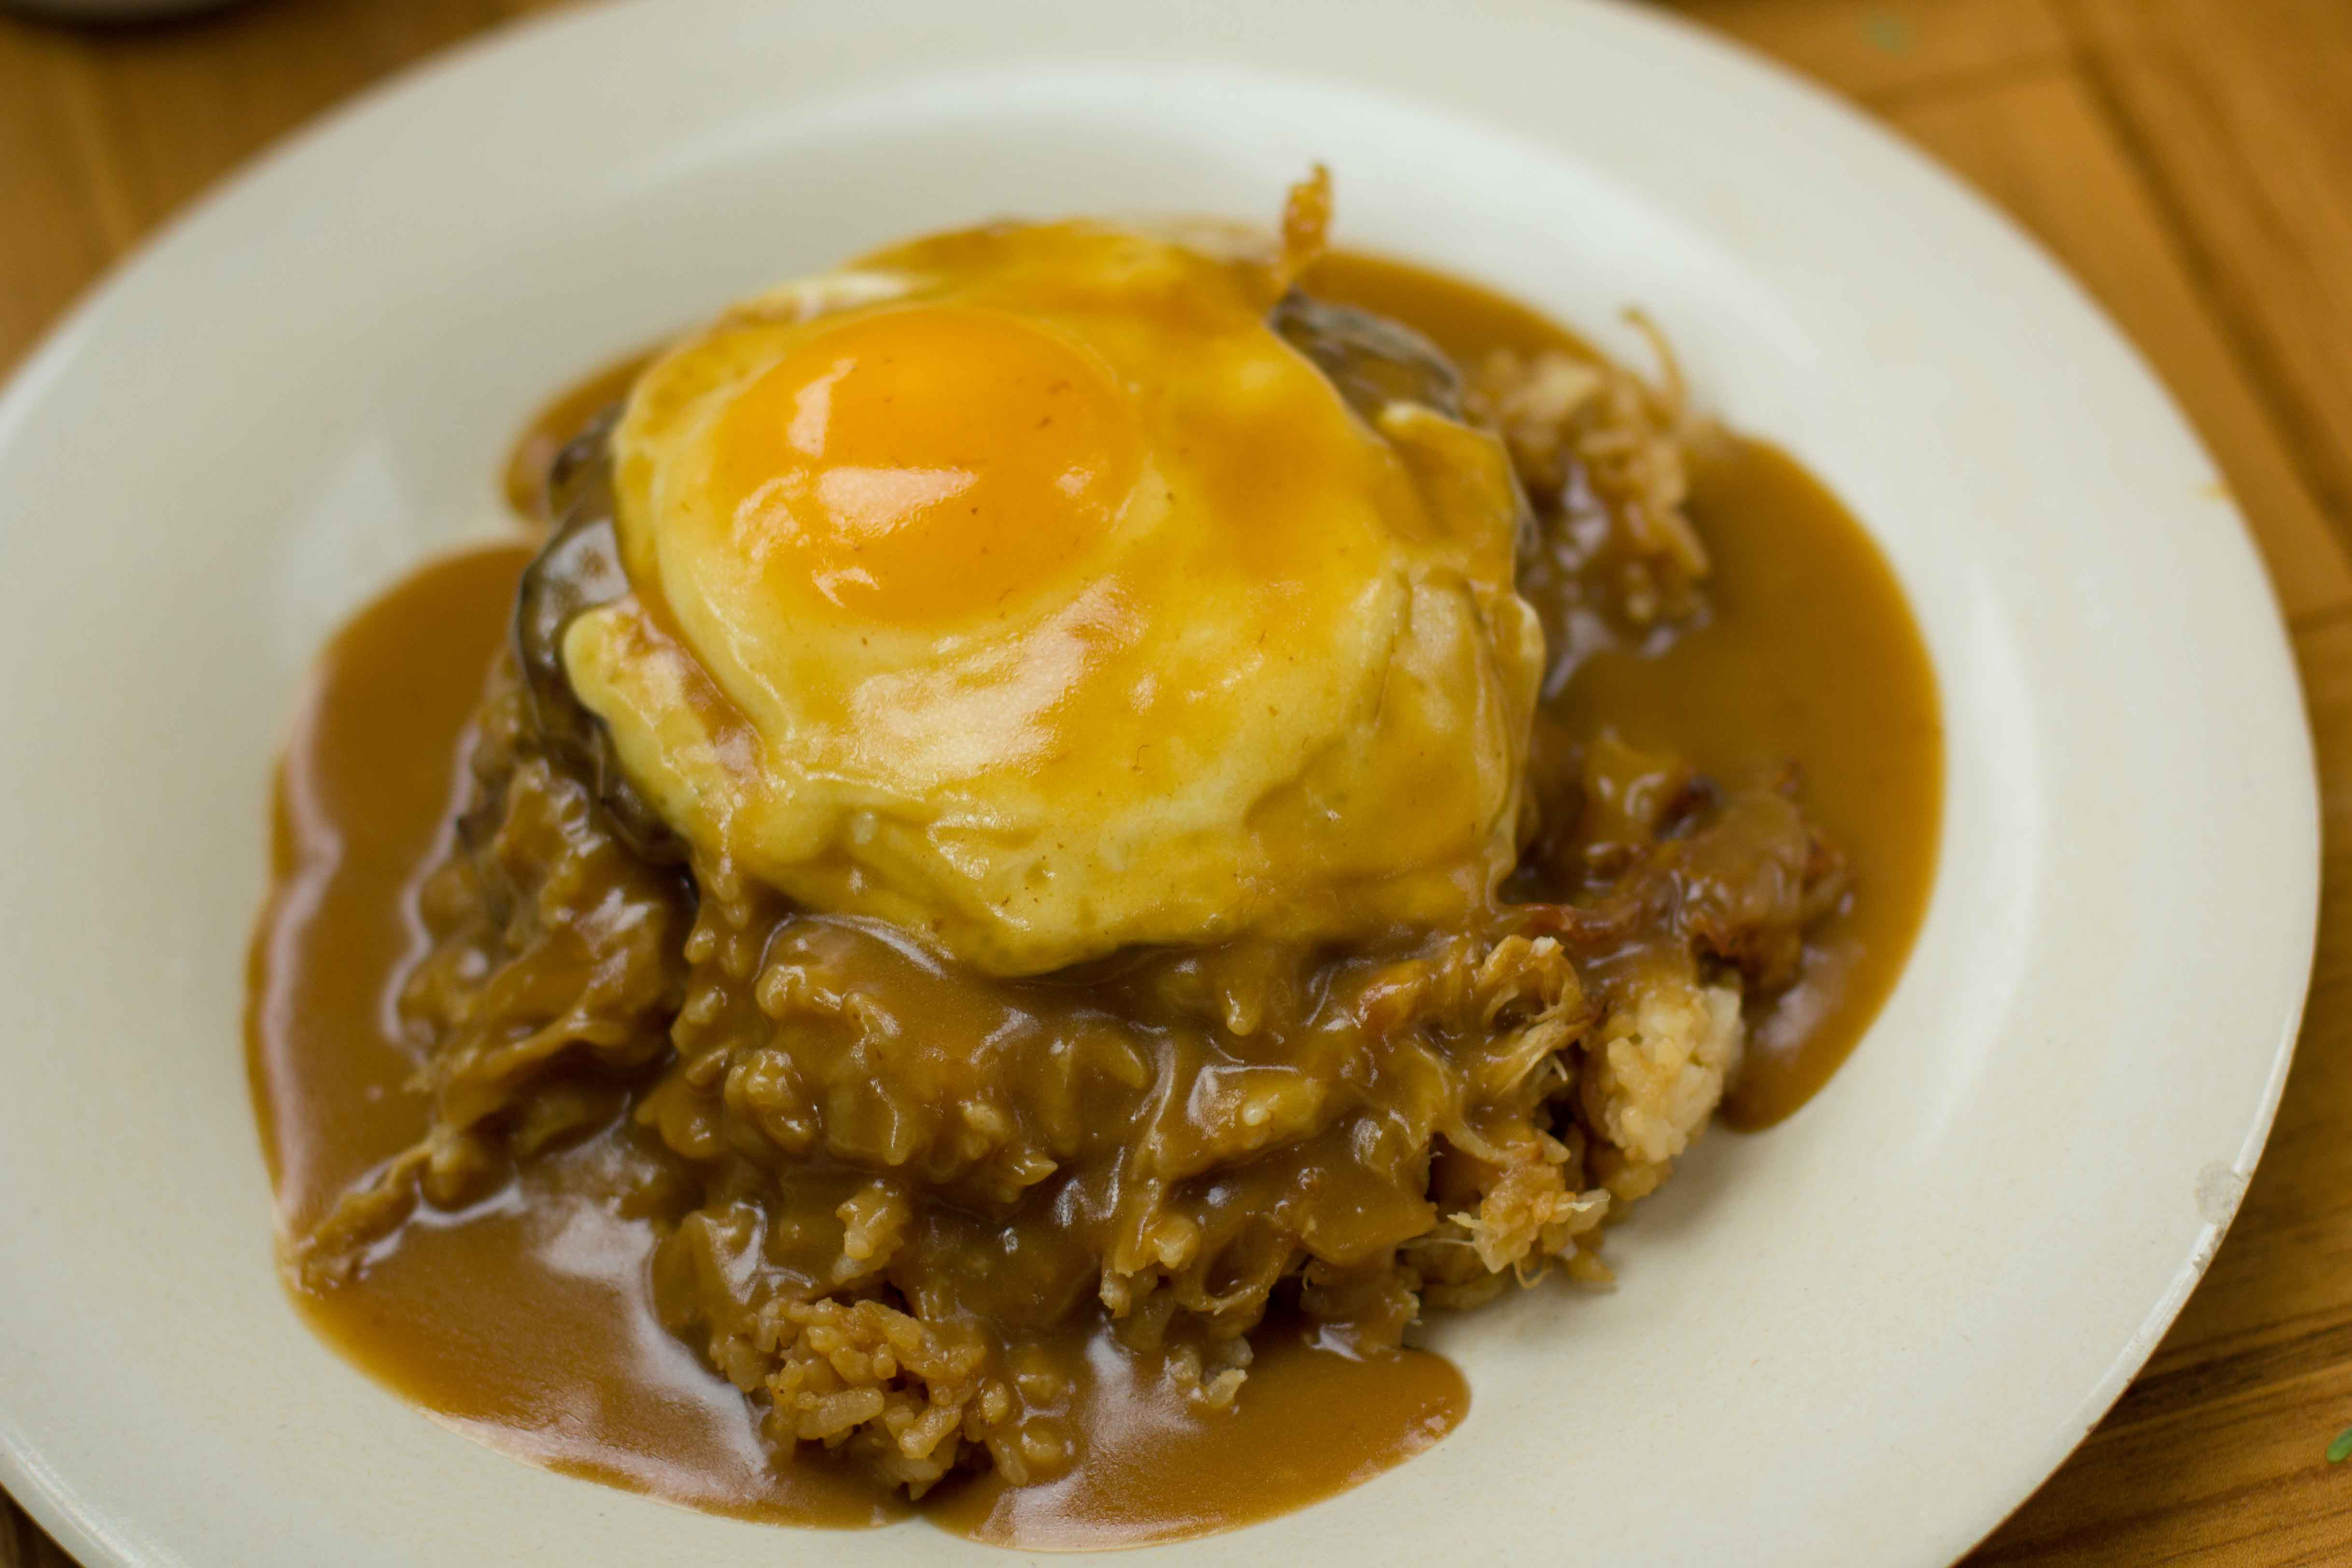 Drowning rainy days in Maui with loco moco and pie – Call Me a Food